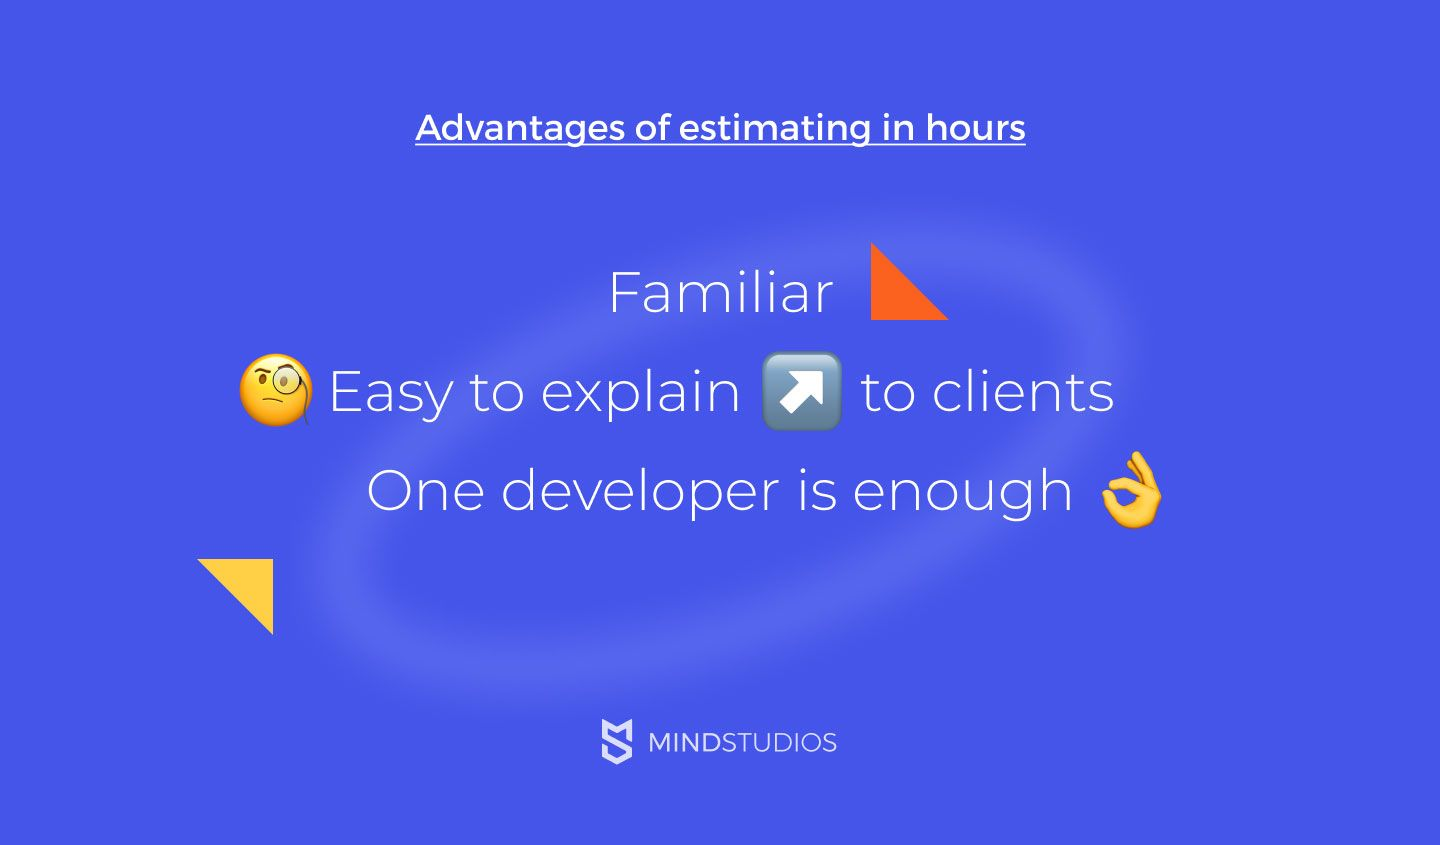 Advantages of estimating in hours